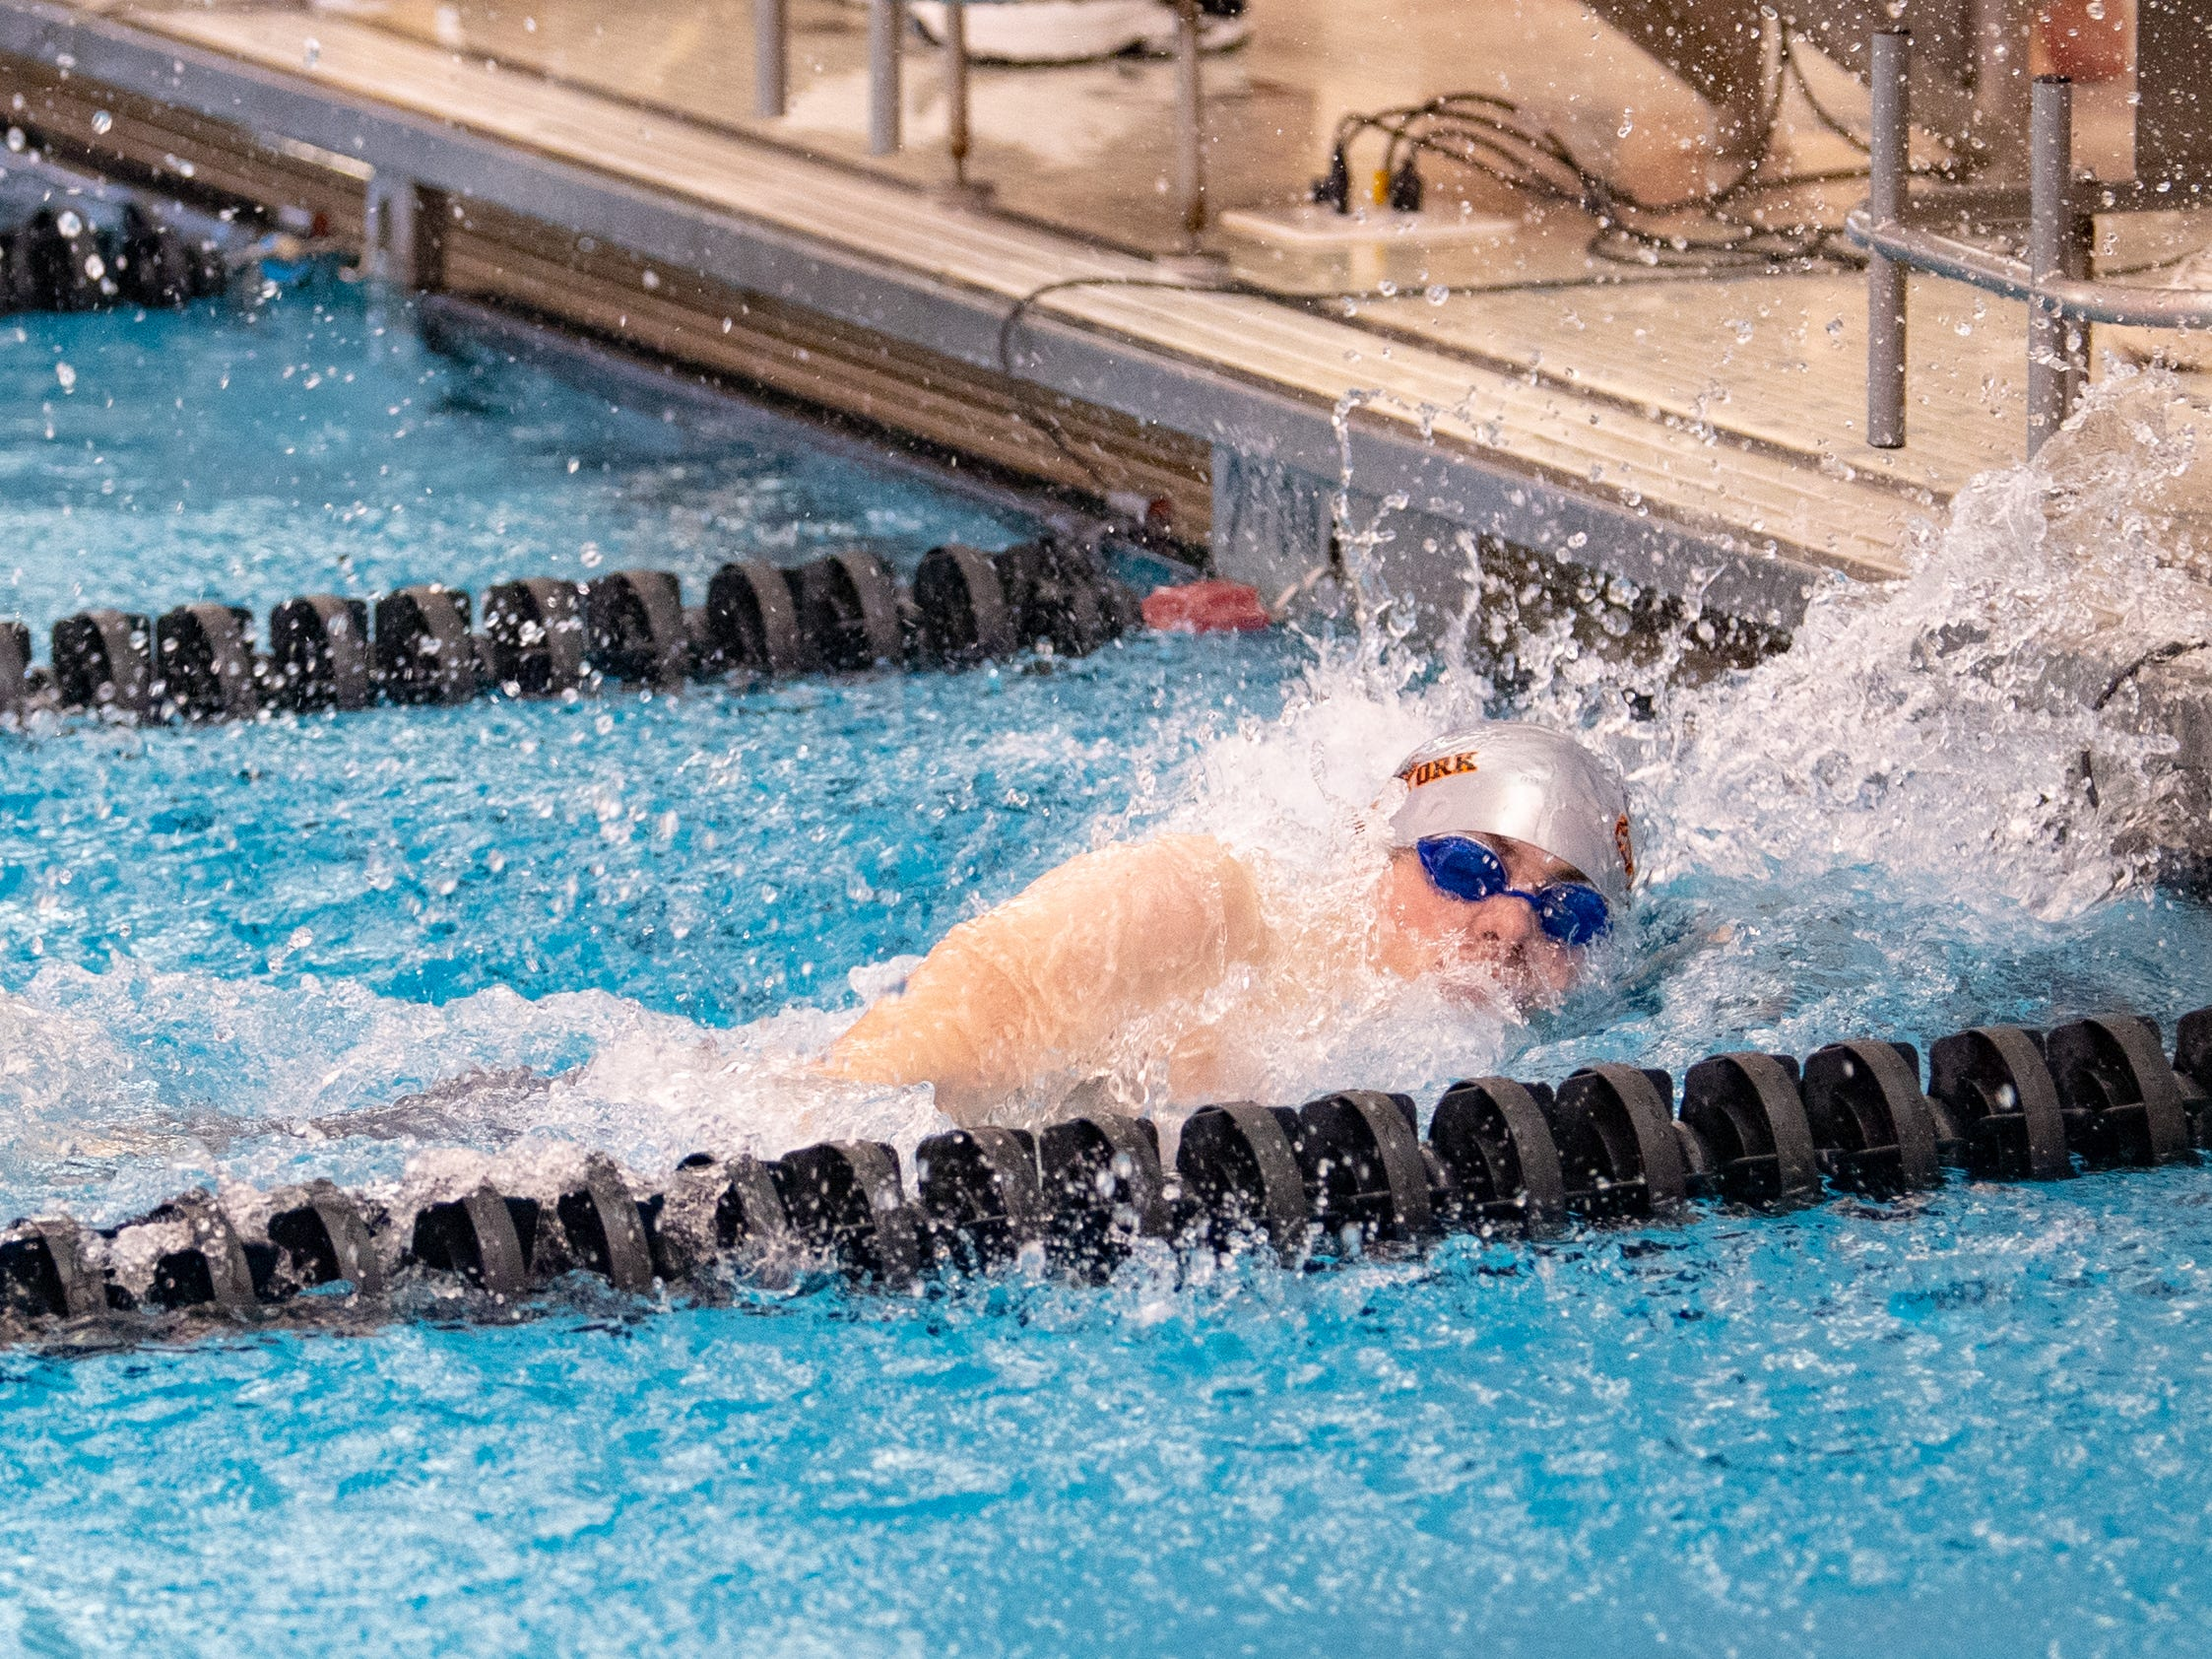 Central York's Lucas Tate finishes the Boys 400 Yard Freestyle Relay during the 2019 YAIAA Swimming and Diving Championships at Central York High School, February 9, 2019.